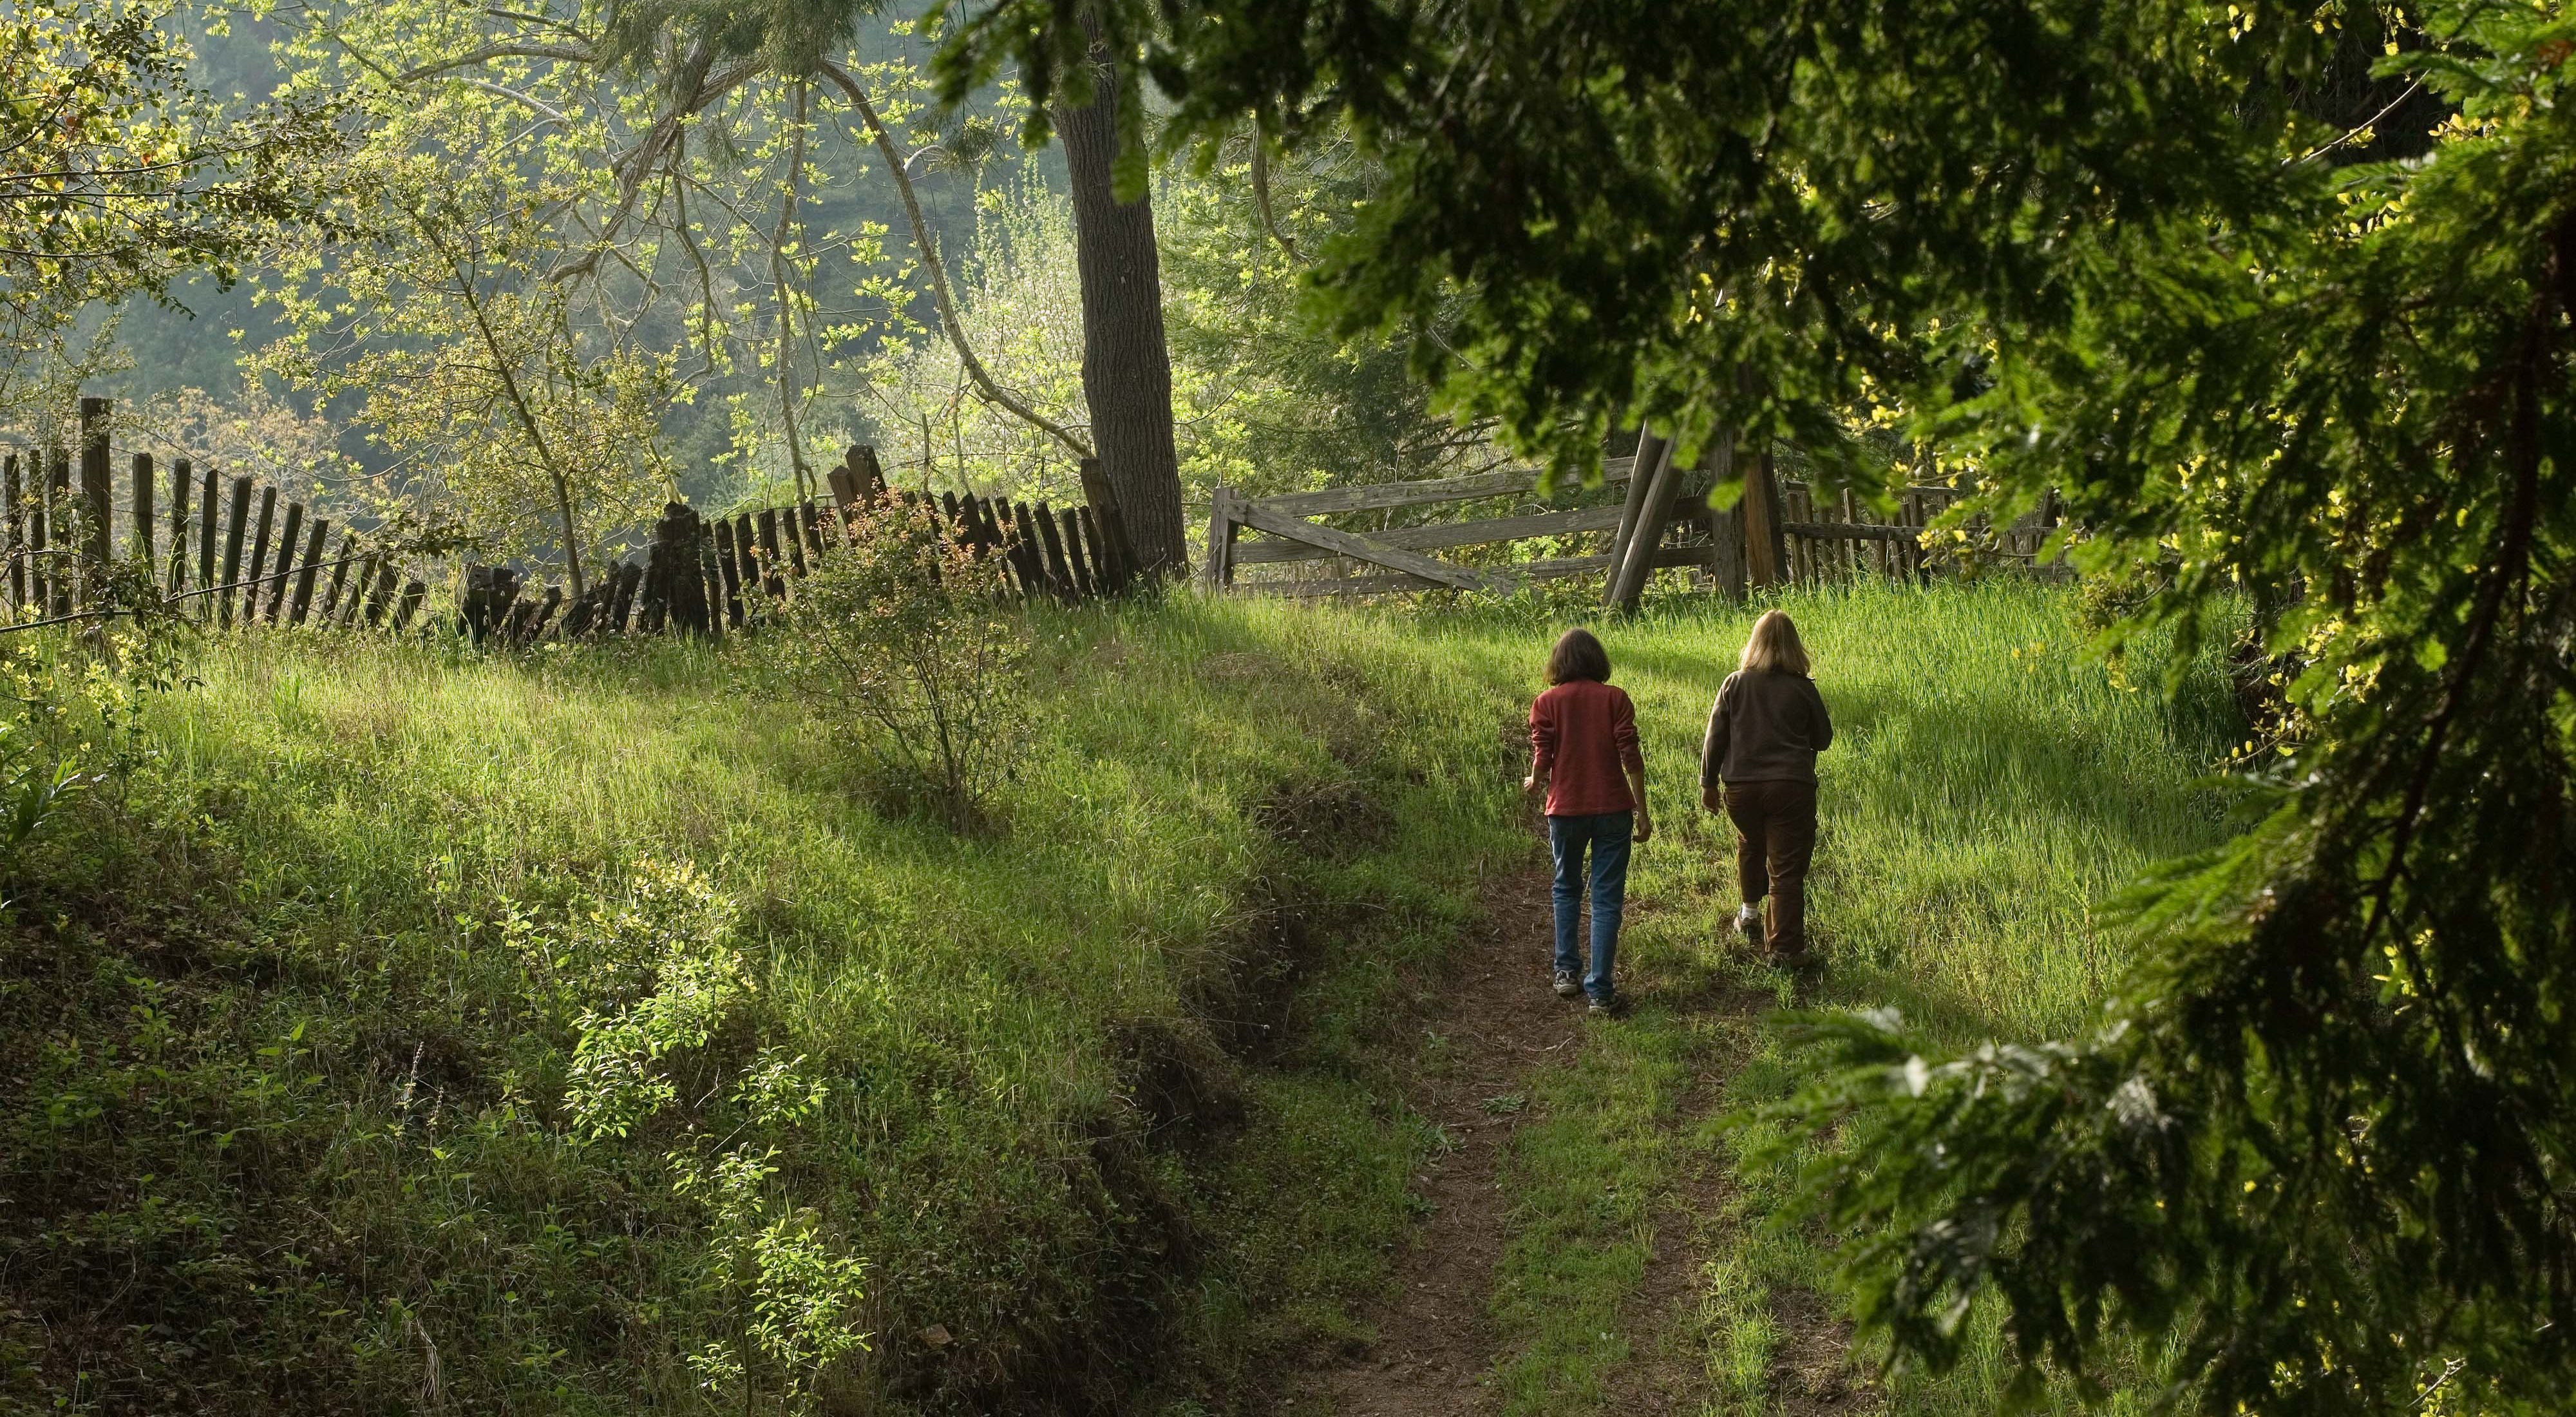 Two hikers walking down a path to a fence.